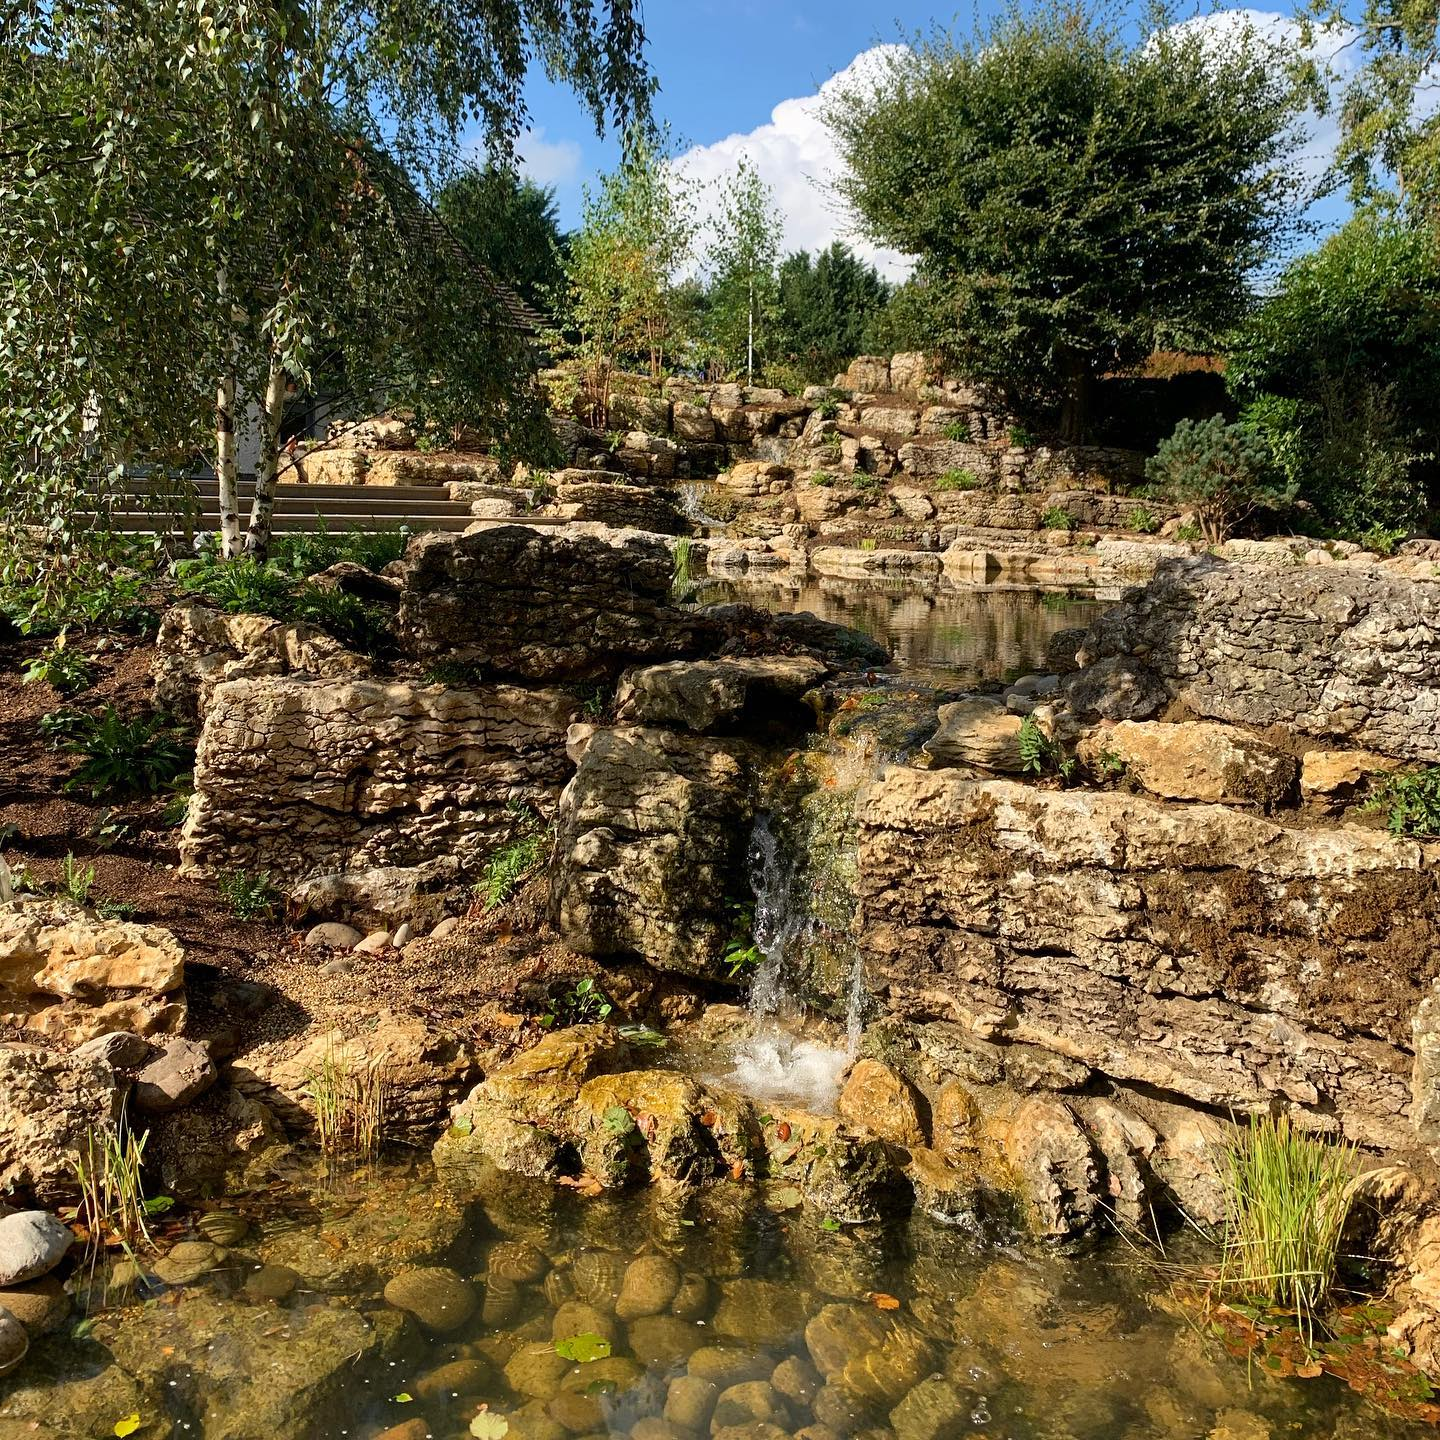 Waterfalls running crystal clear on our Surrey project. just a little more greening needed... @waterartisans @belderboslandscapes